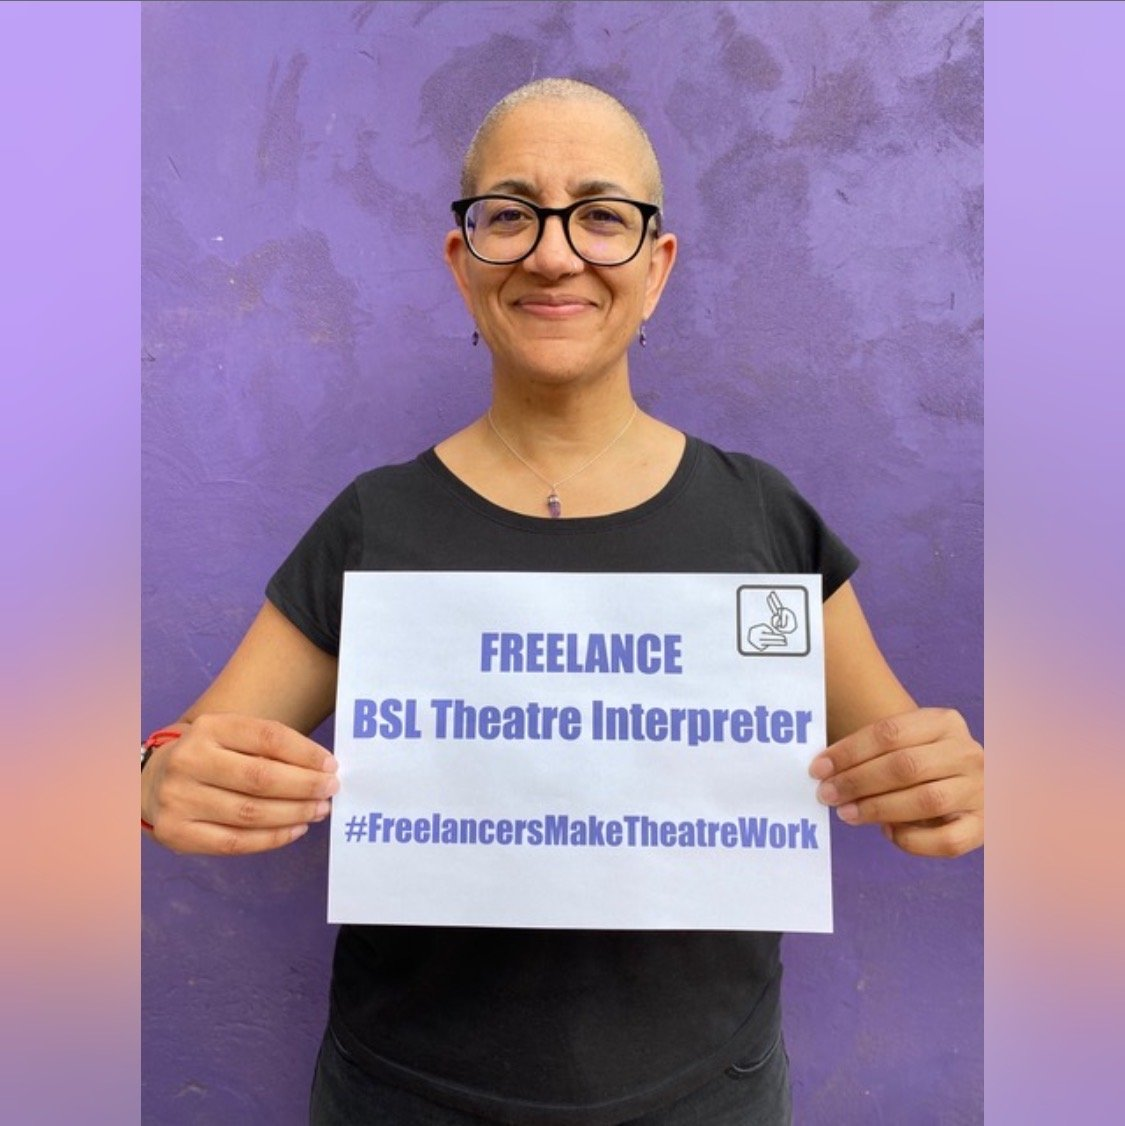 Photo of a BSL theatre interpreter holding up a sign